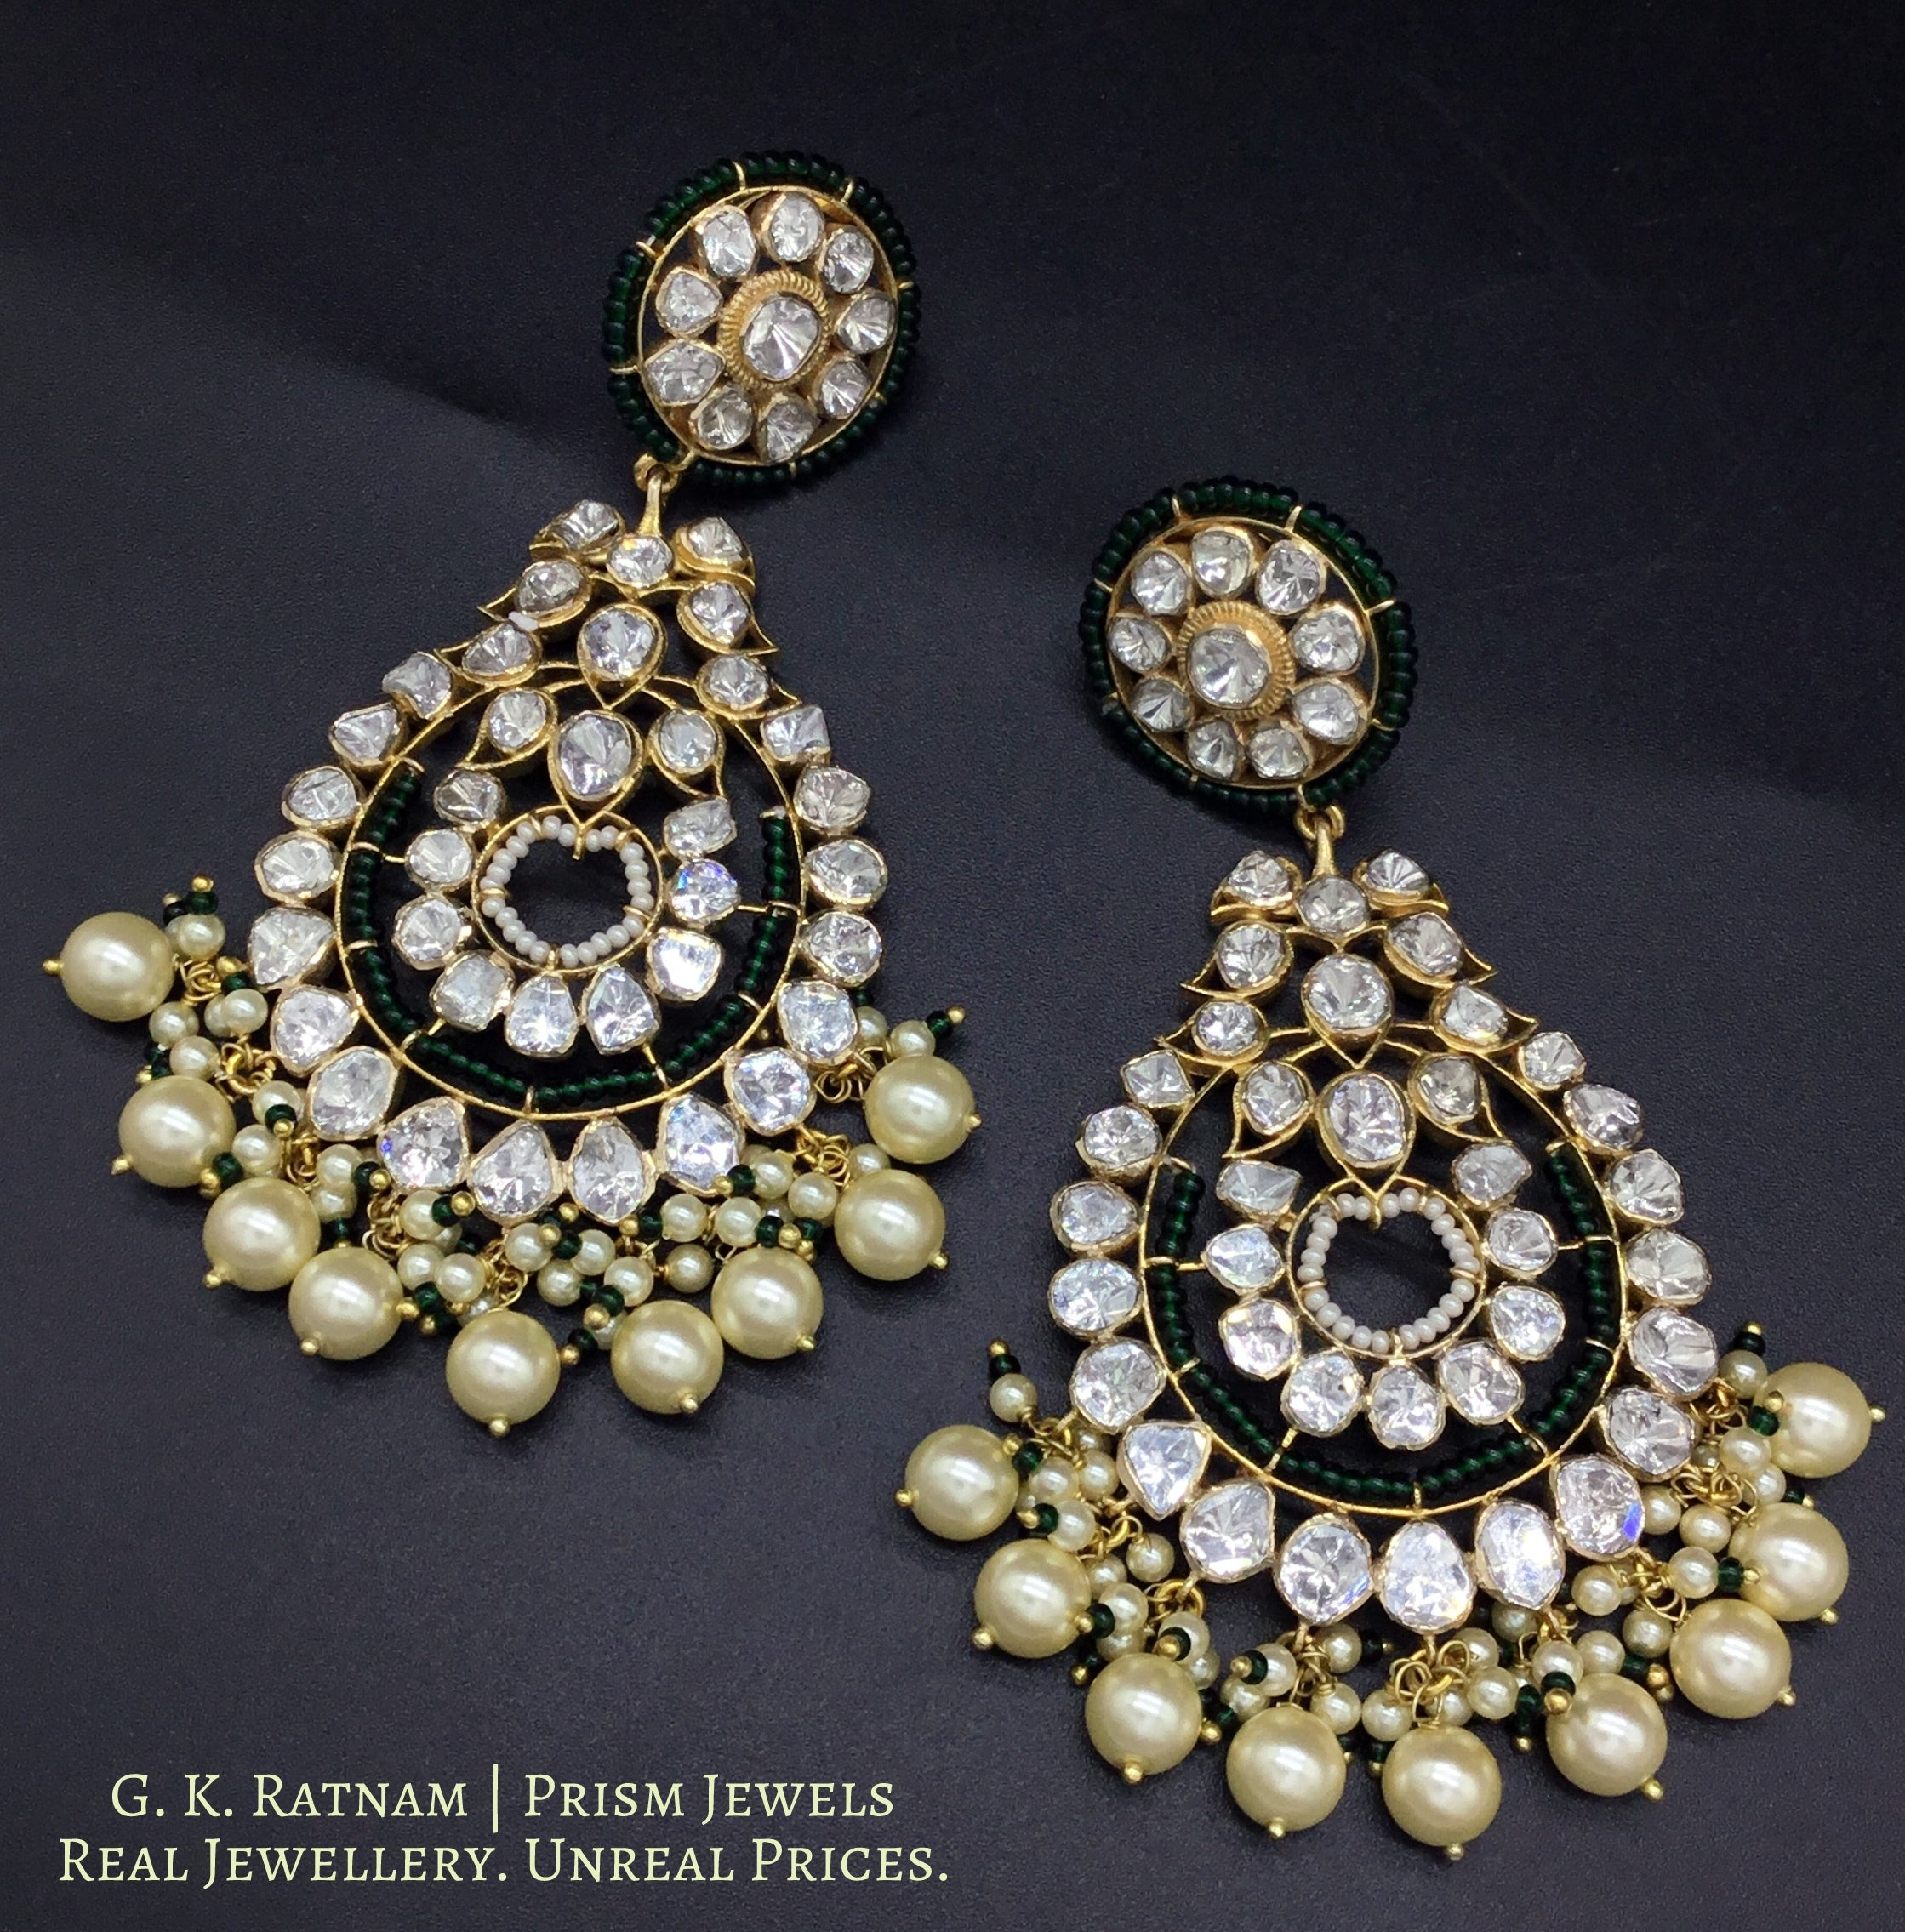 14k Gold and Diamond Polki Open Setting Chand Bali Earring pair with triple-coated shell pearls and a touch of dark green - gold diamond polki kundan meena jadau jewellery